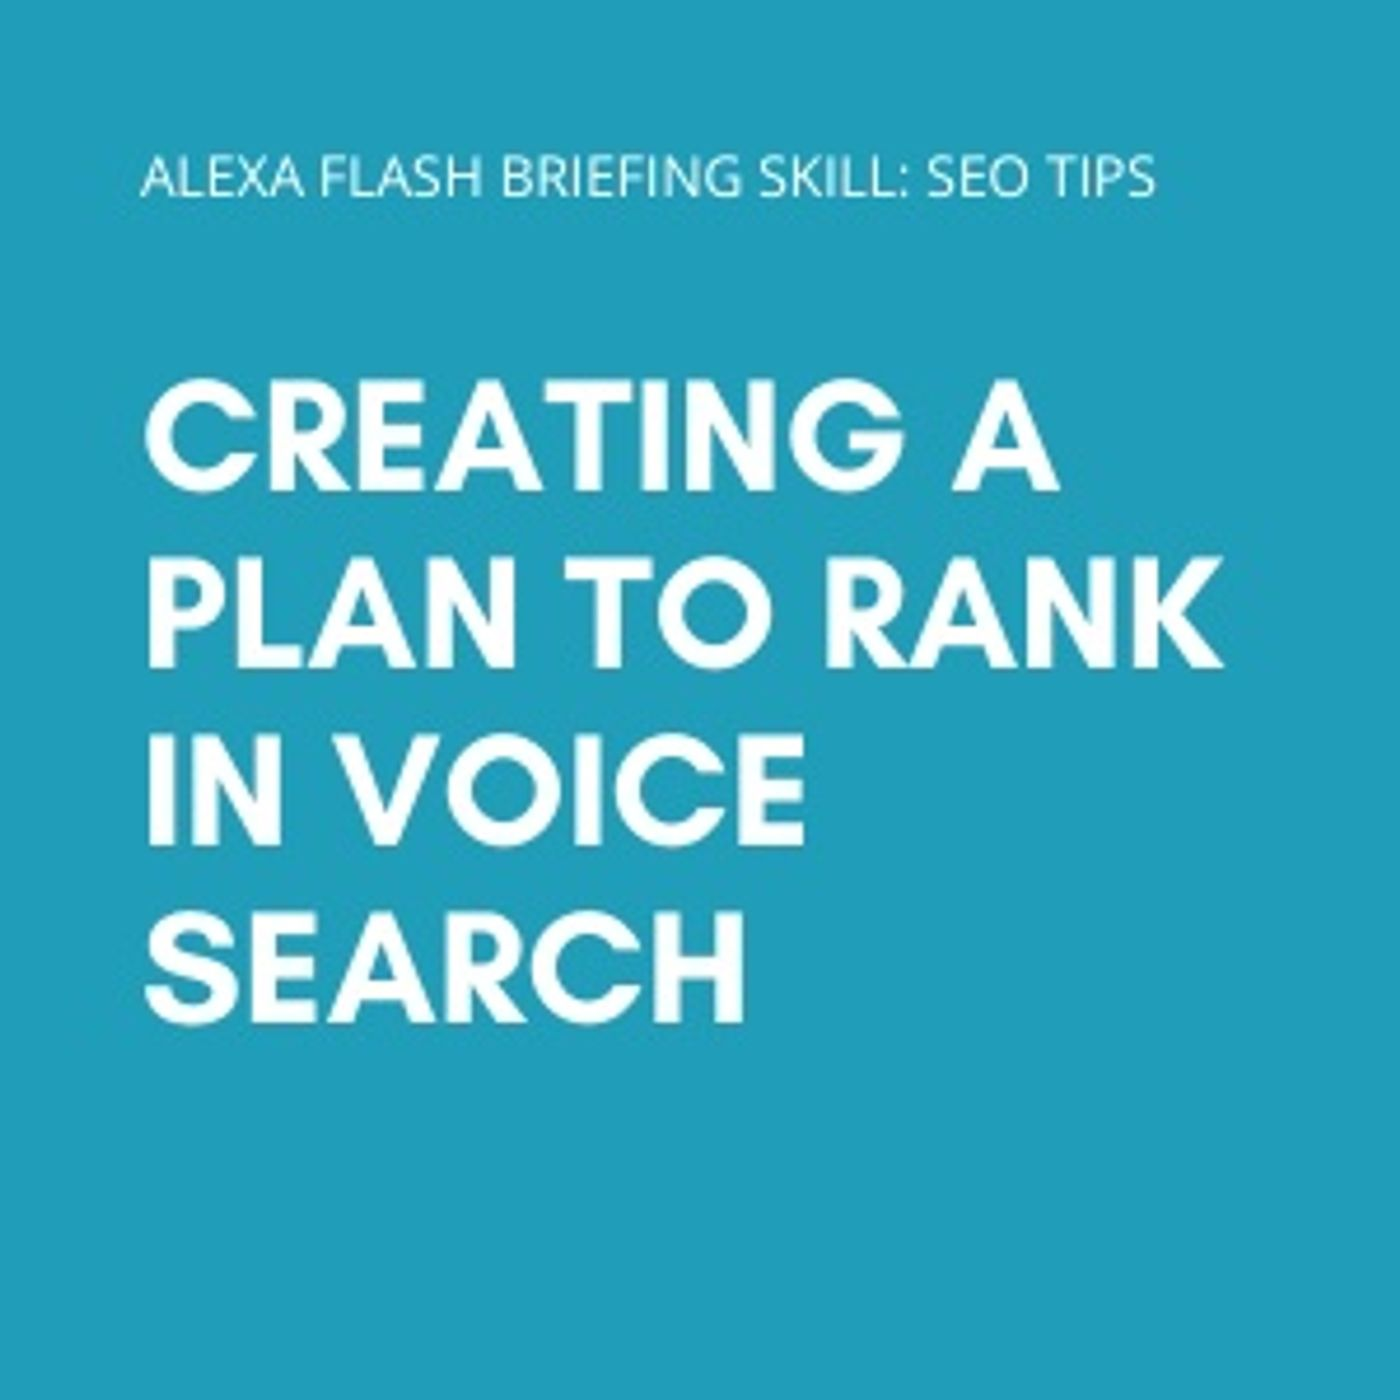 Creating a Plan to Rank in Voice Search